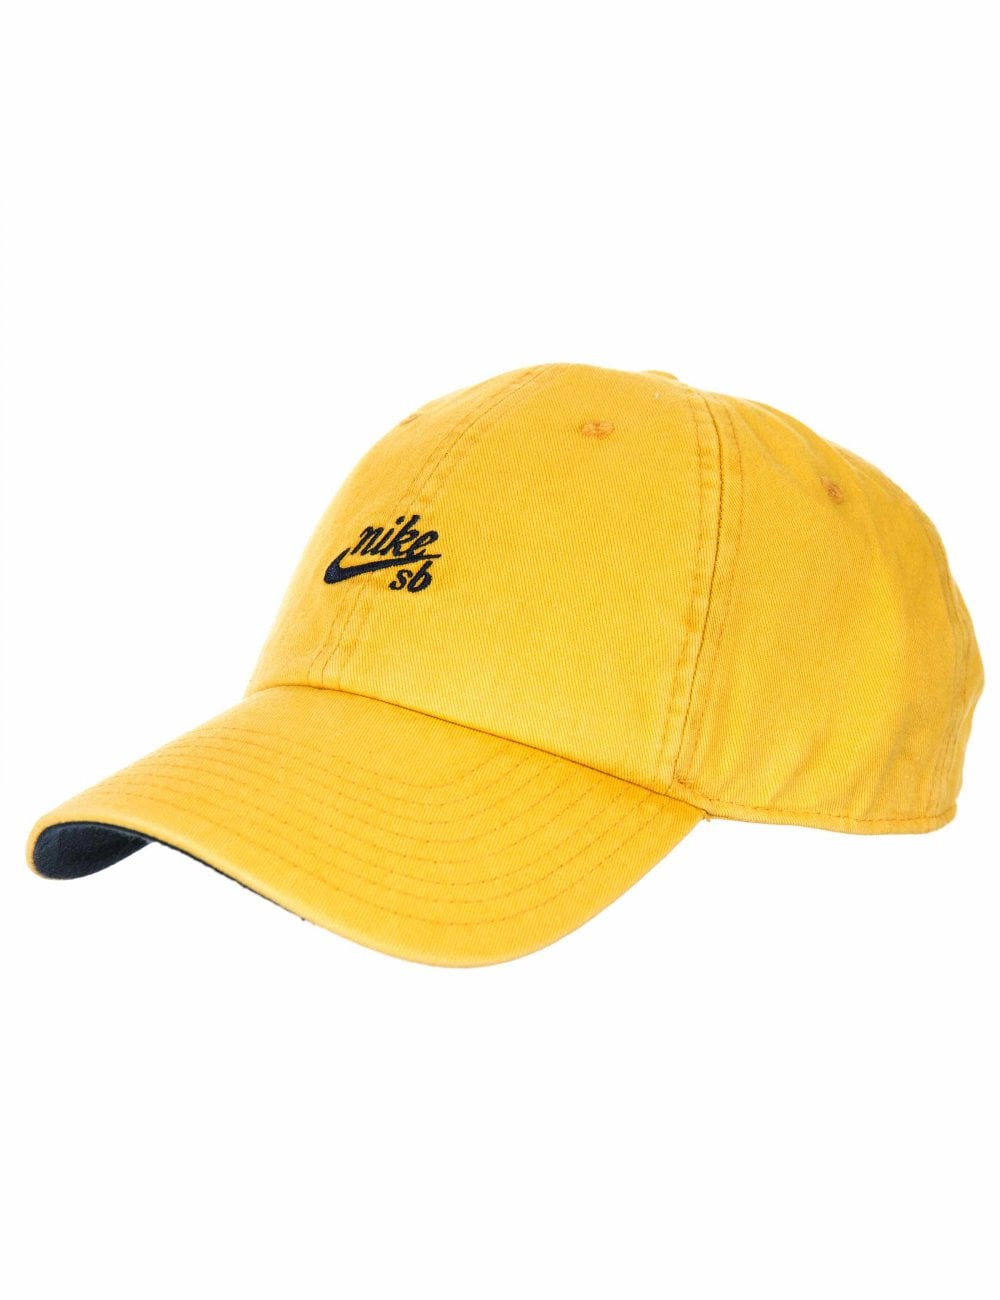 6fe4b5d40d5 Nike SB H86 Icon Adjustable Hat - Yellow Ochre - Hat Shop from Fat ...